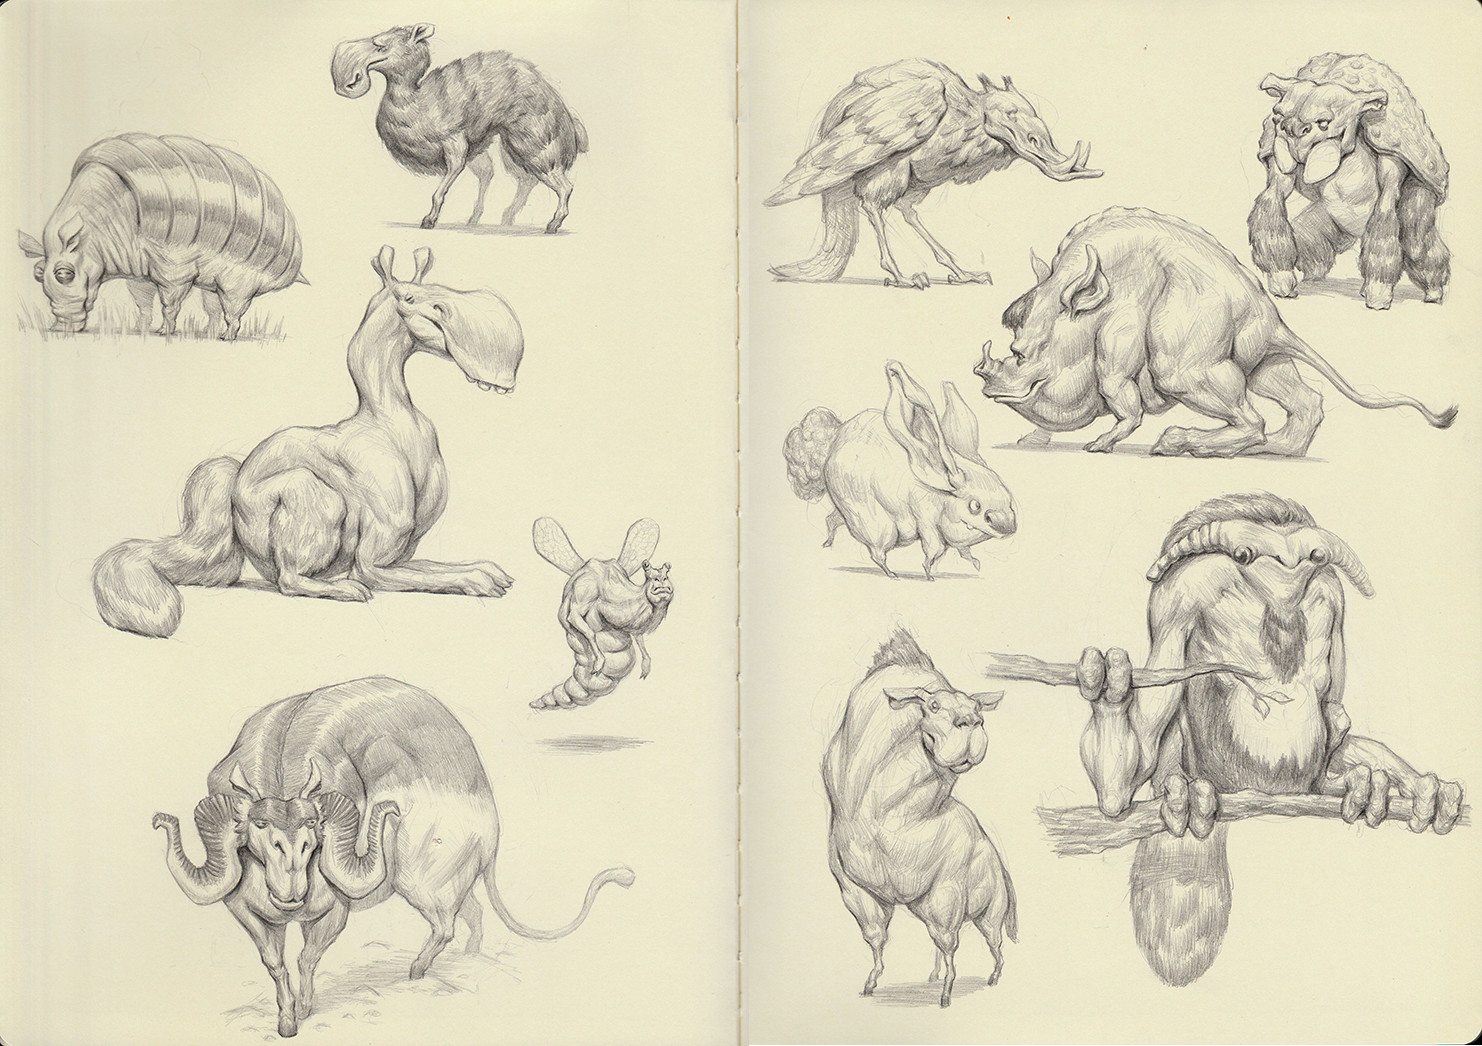 Creature Sketchbook pg 1-2